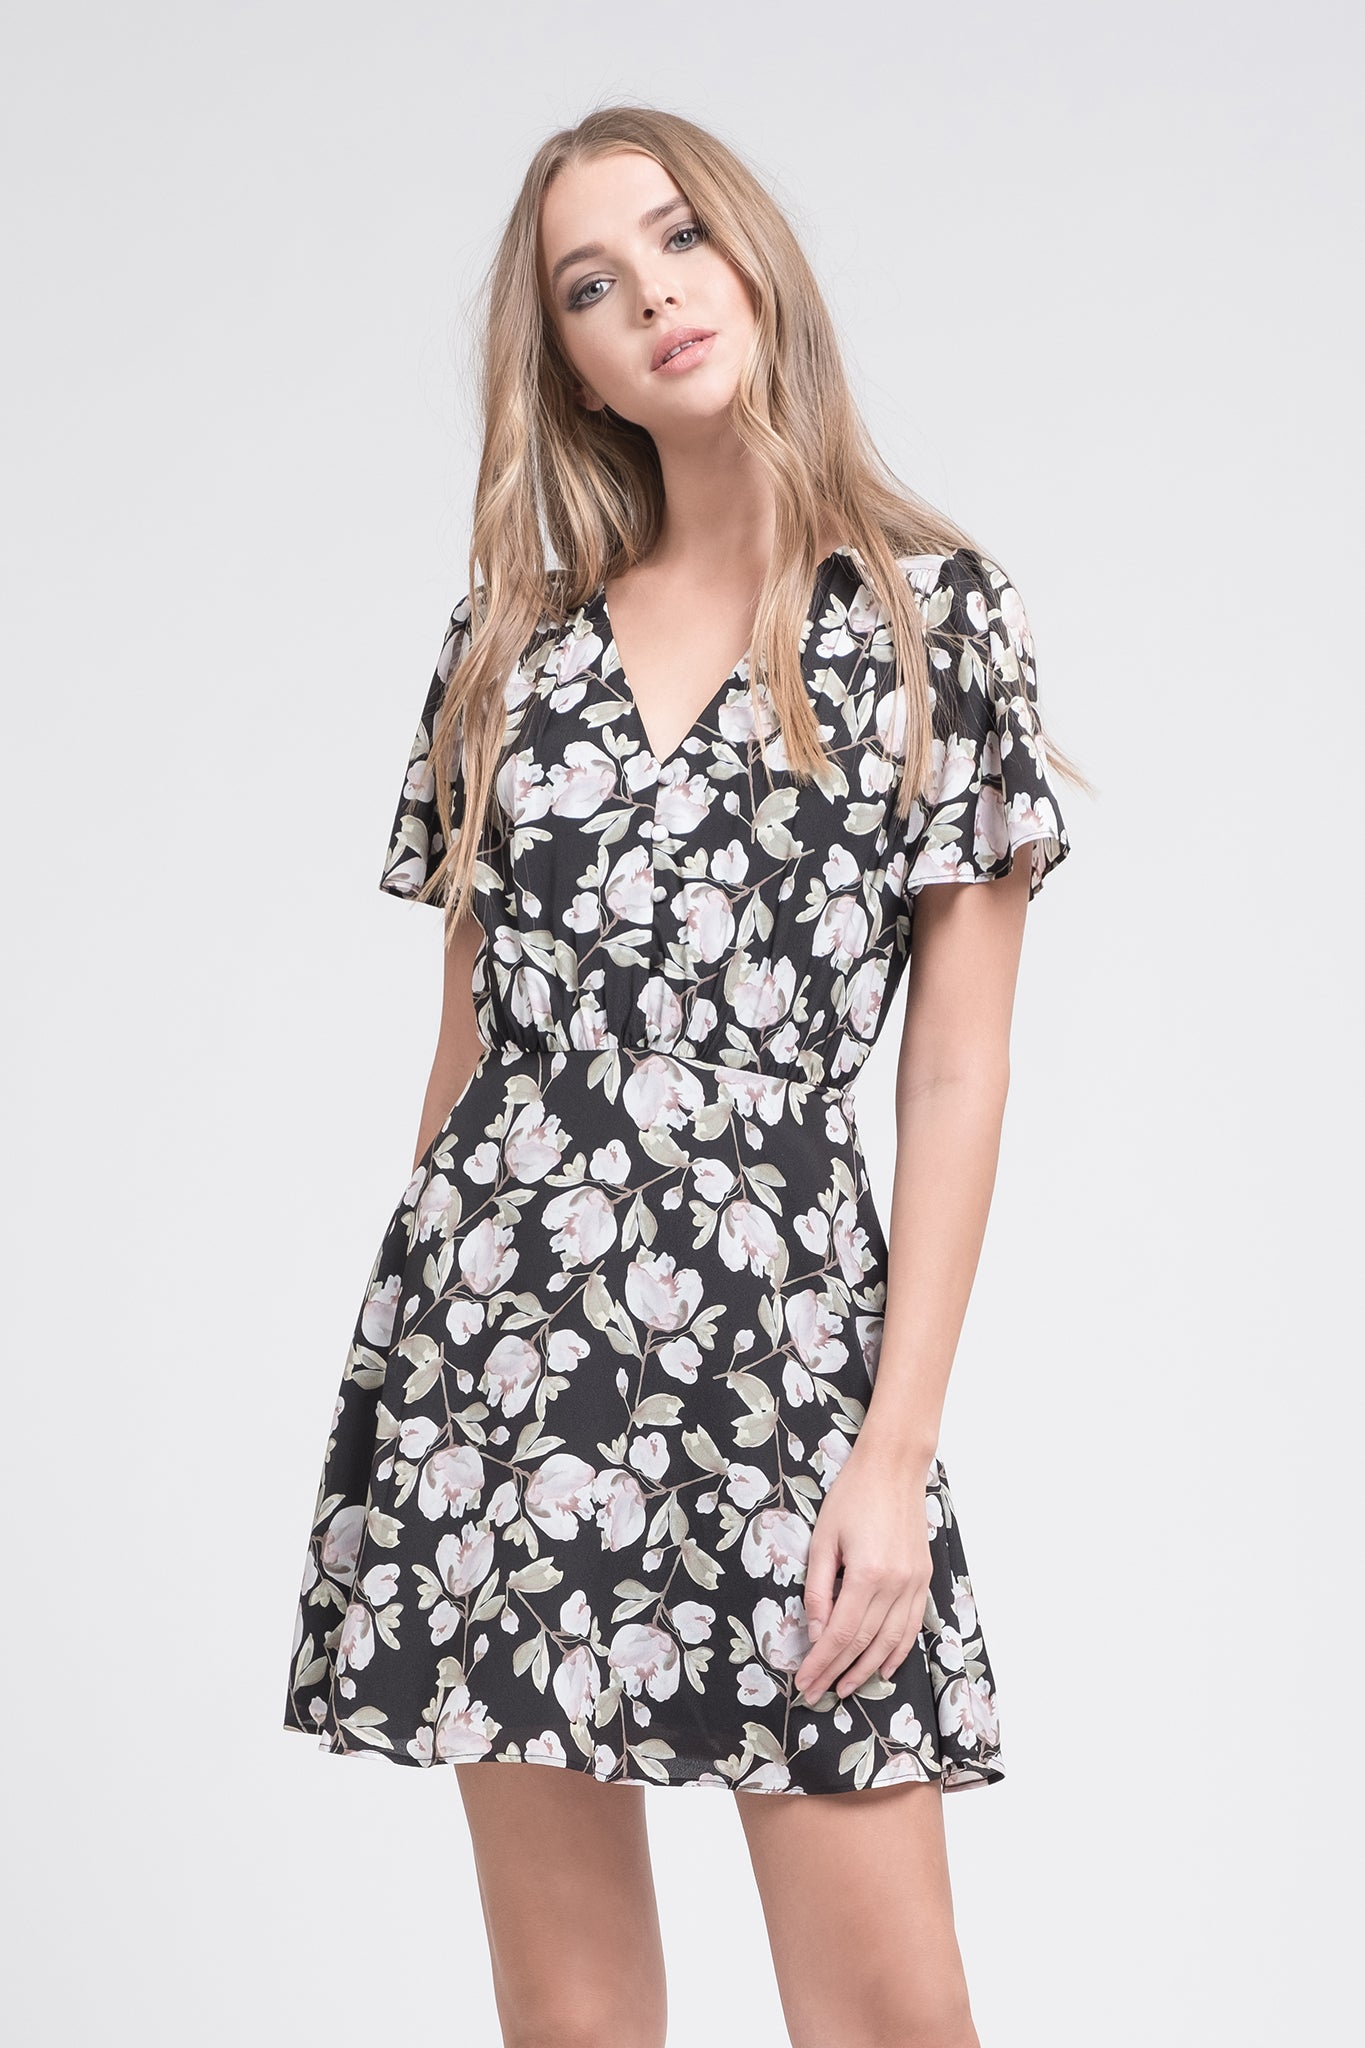 fb4b5a7fdb ... FLORAL PRINTED BUTTON DOWN FIT   FLARE DRESS. caption text ...